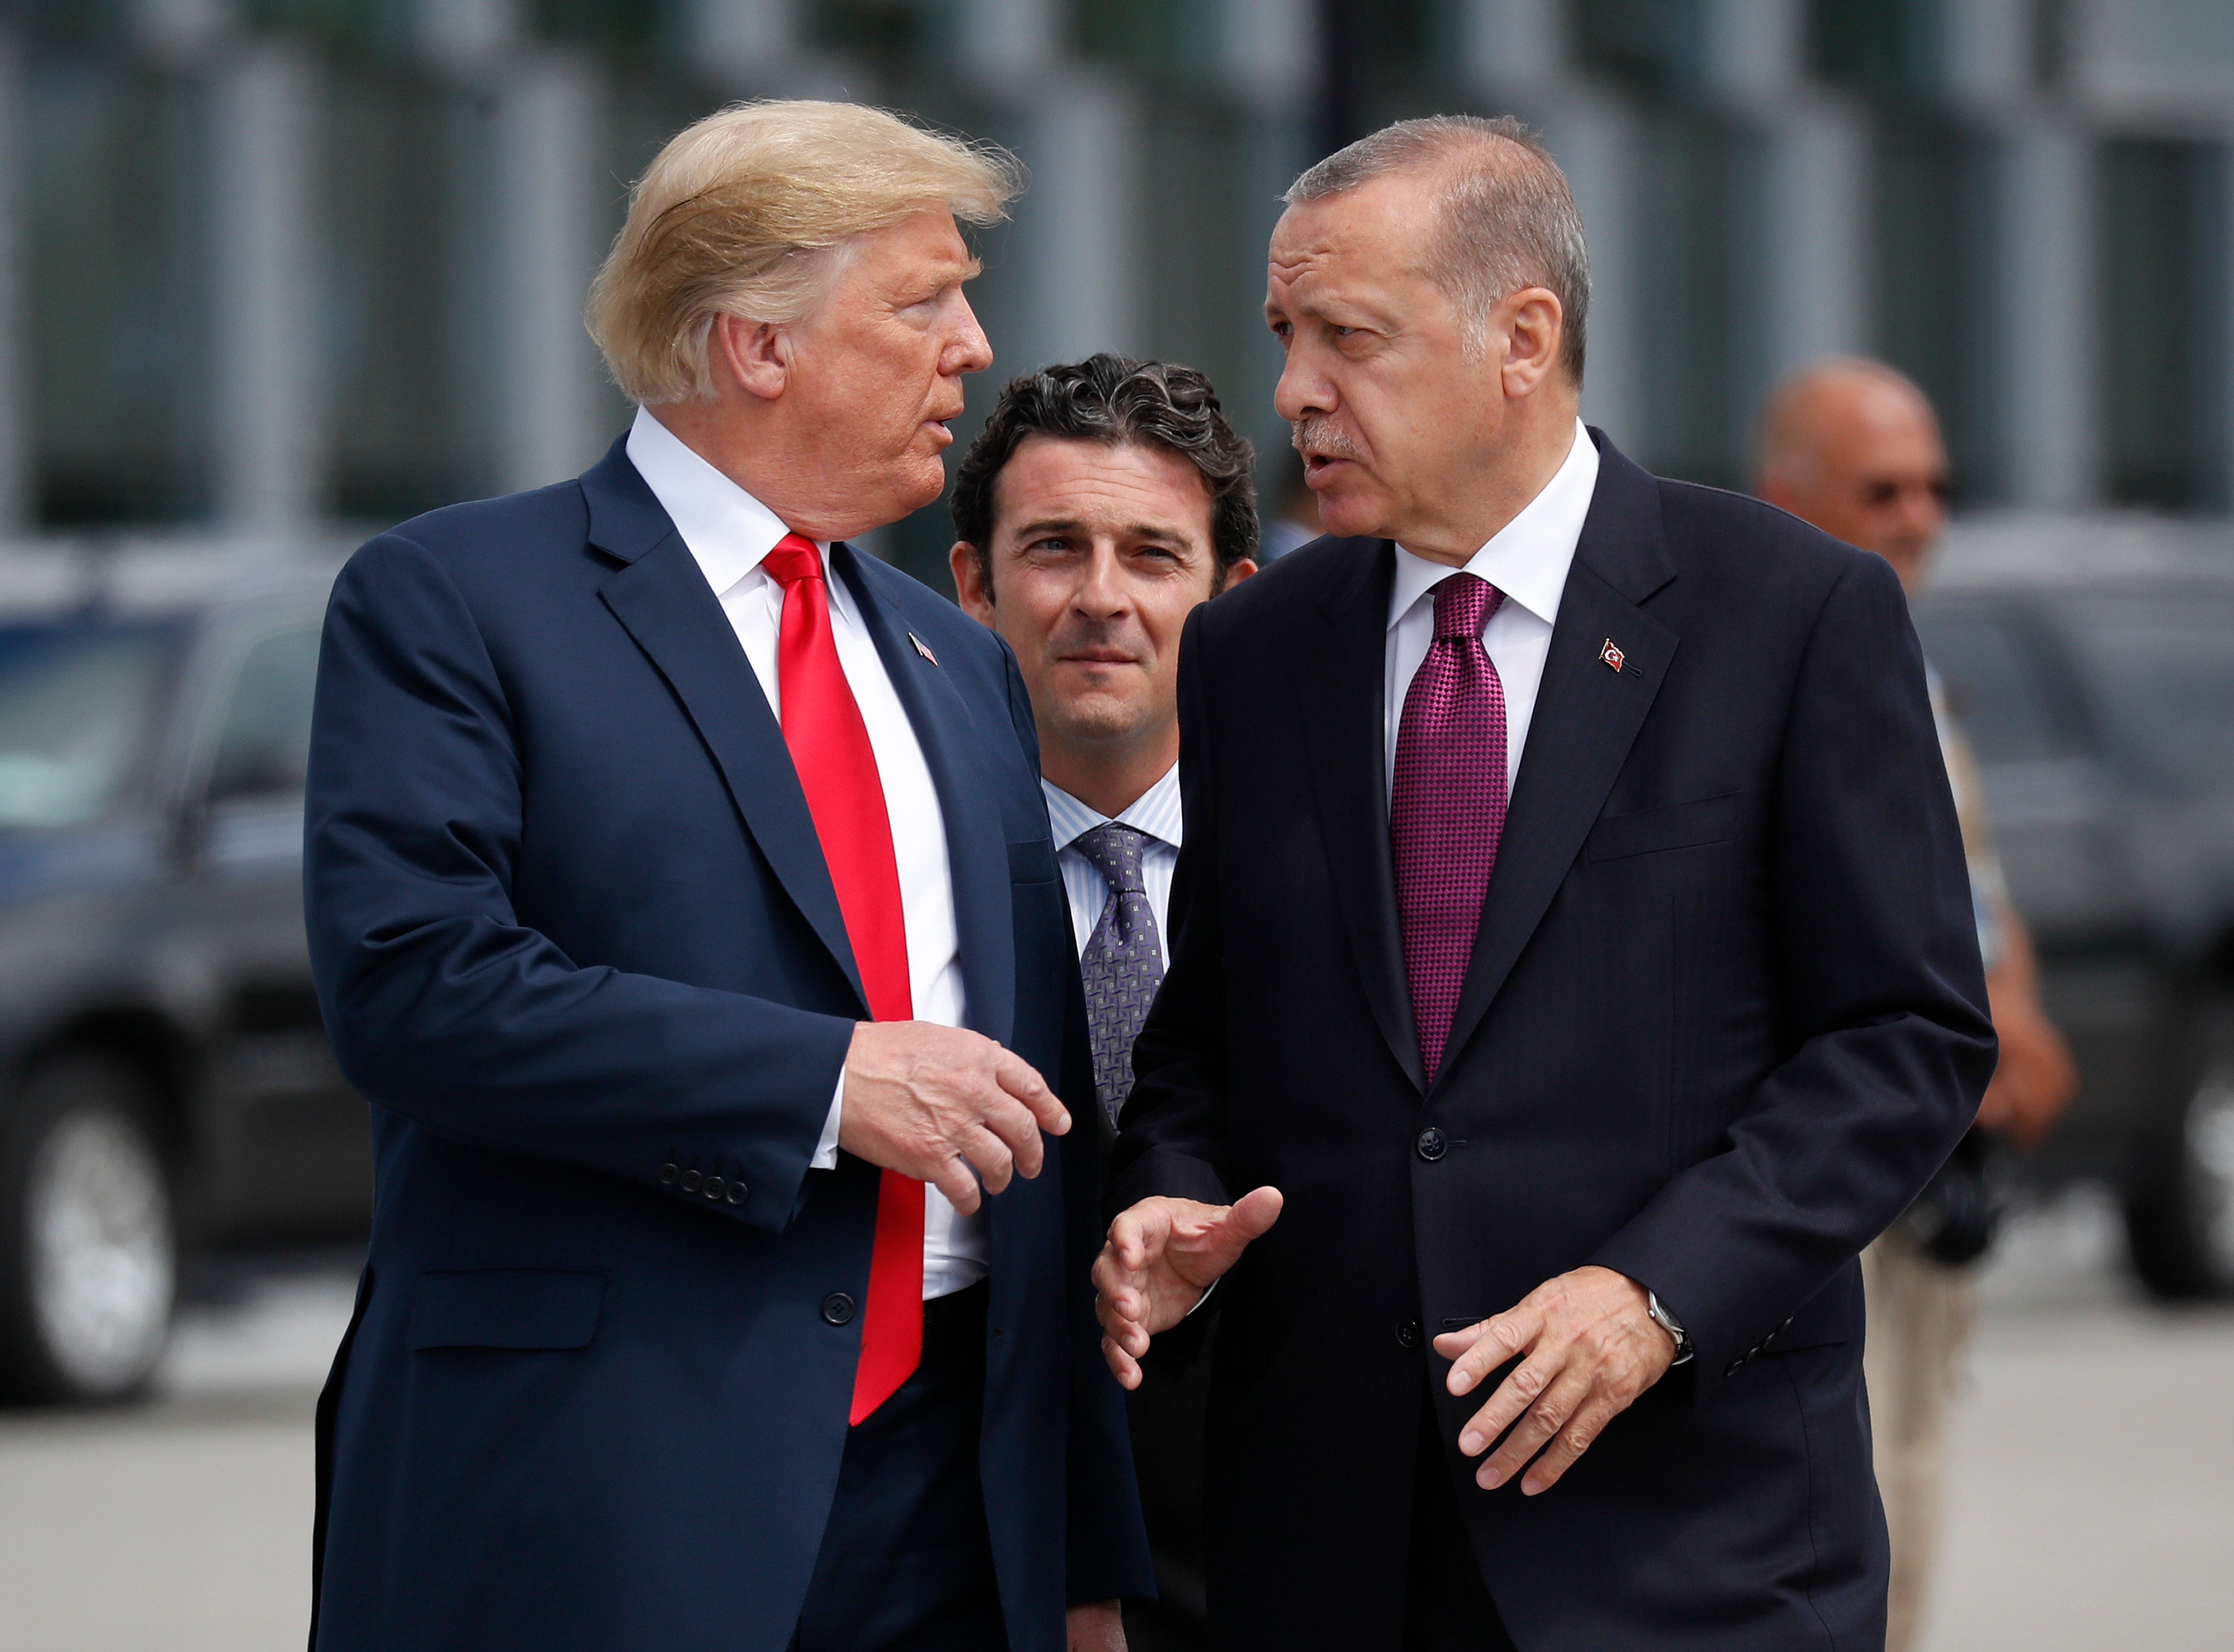 Trump and Turkish President Recep Tayyip Erdogan spoke over the phone before the shock announcement